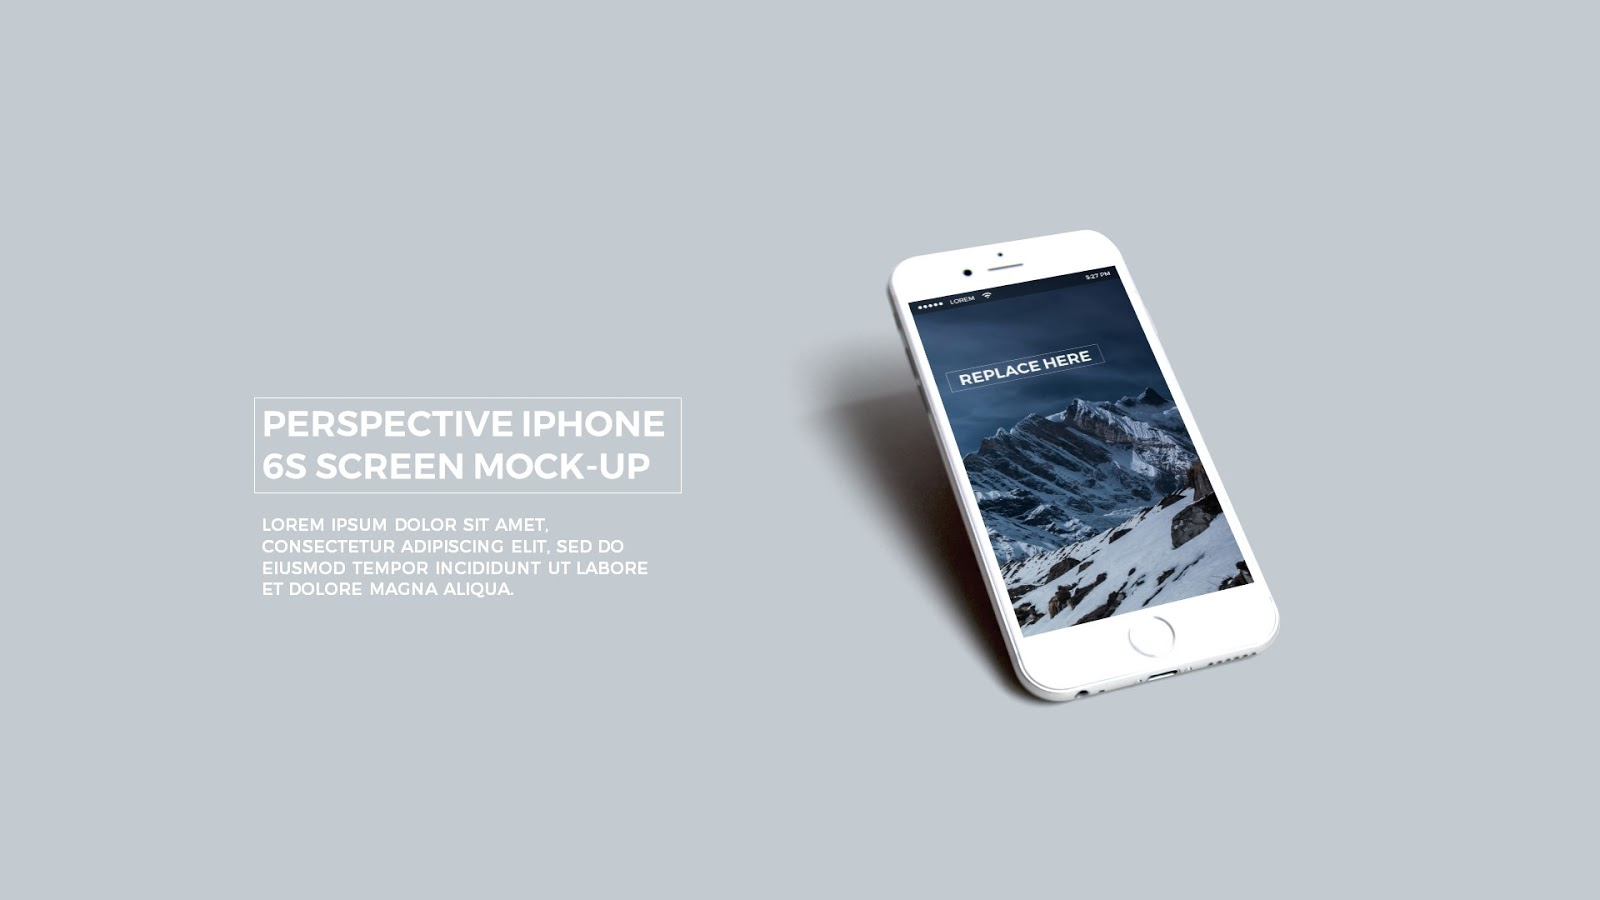 Free powerpoint template with realistic iphone 6s app ui mockup free powerpoint template with realistic iphone 6s app ui mockup in grey background toneelgroepblik